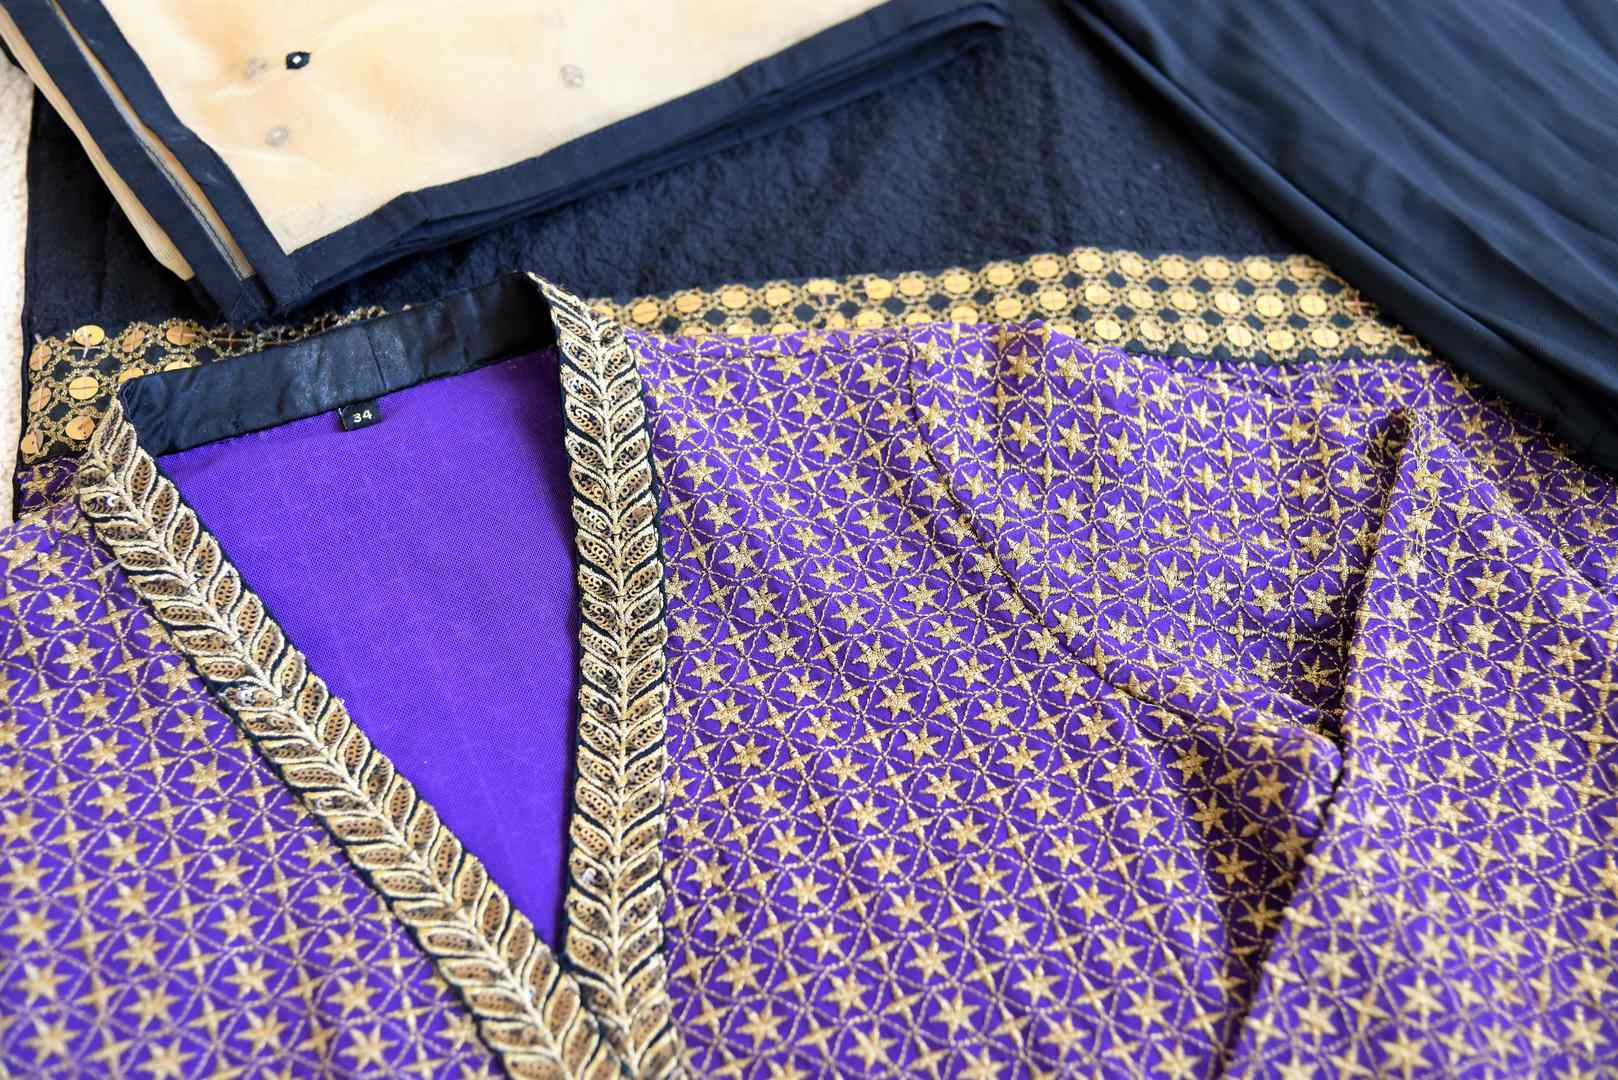 Buy traditional purple and black salwar suit online in USA with gold work from Pure Elegance. Choose from a range of exclusive Indian designer suits, wedding dresses, Anarkali suits in beautiful styles and designs from our Indian fashion store in USA and flaunt your tasteful sartorial choices on special occasions.-details